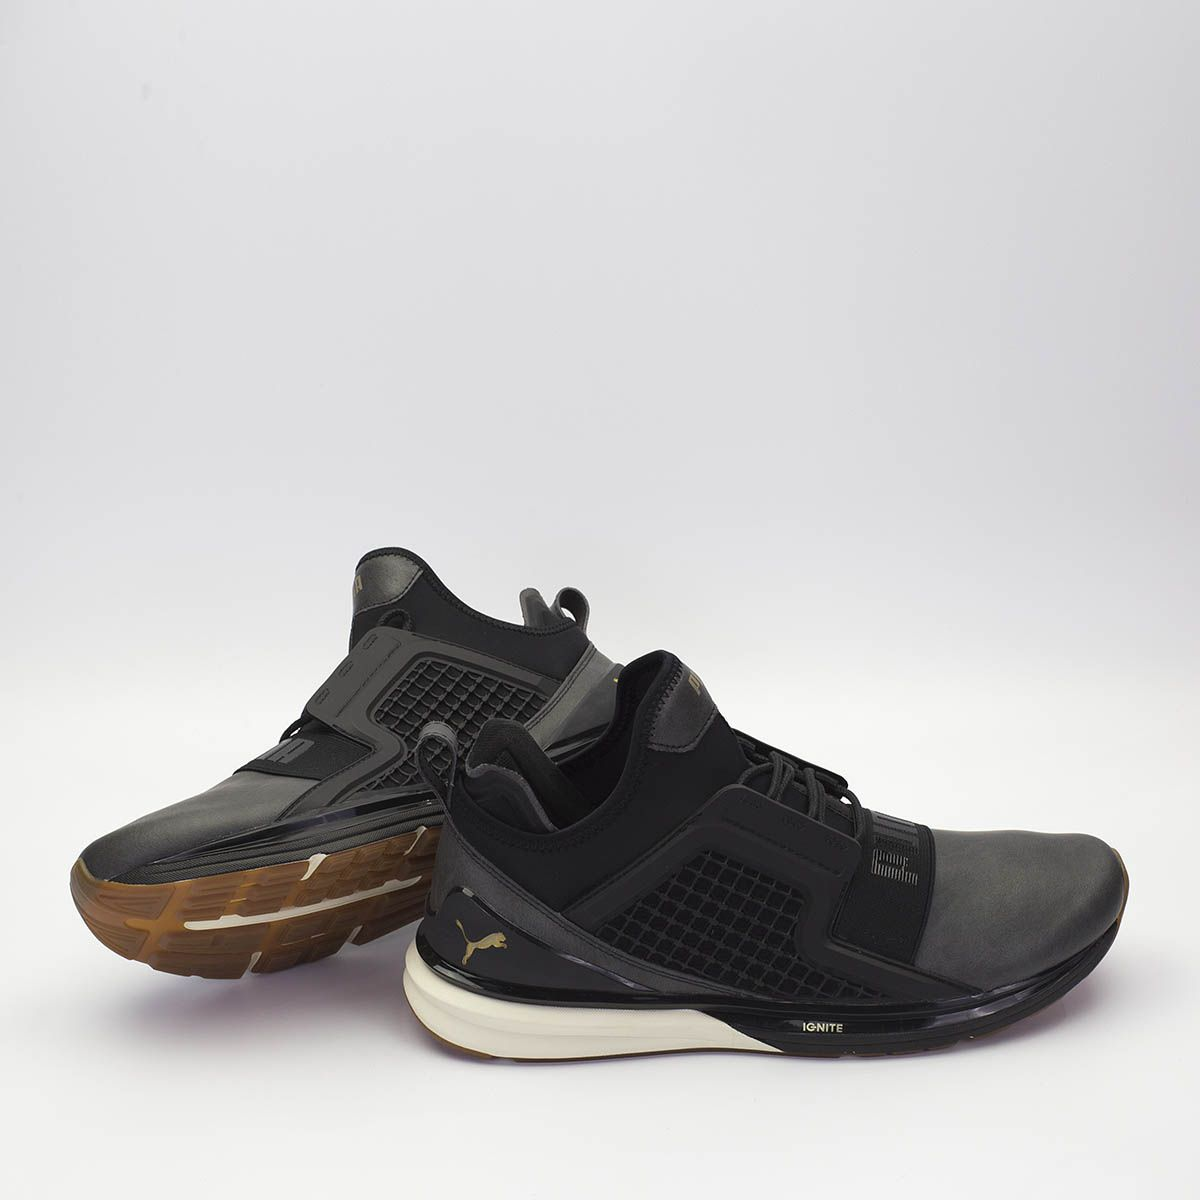 d1afb9f44035 PUMA IGNITE LIMITLESS LEATHER - ΜΑΥΡΟ